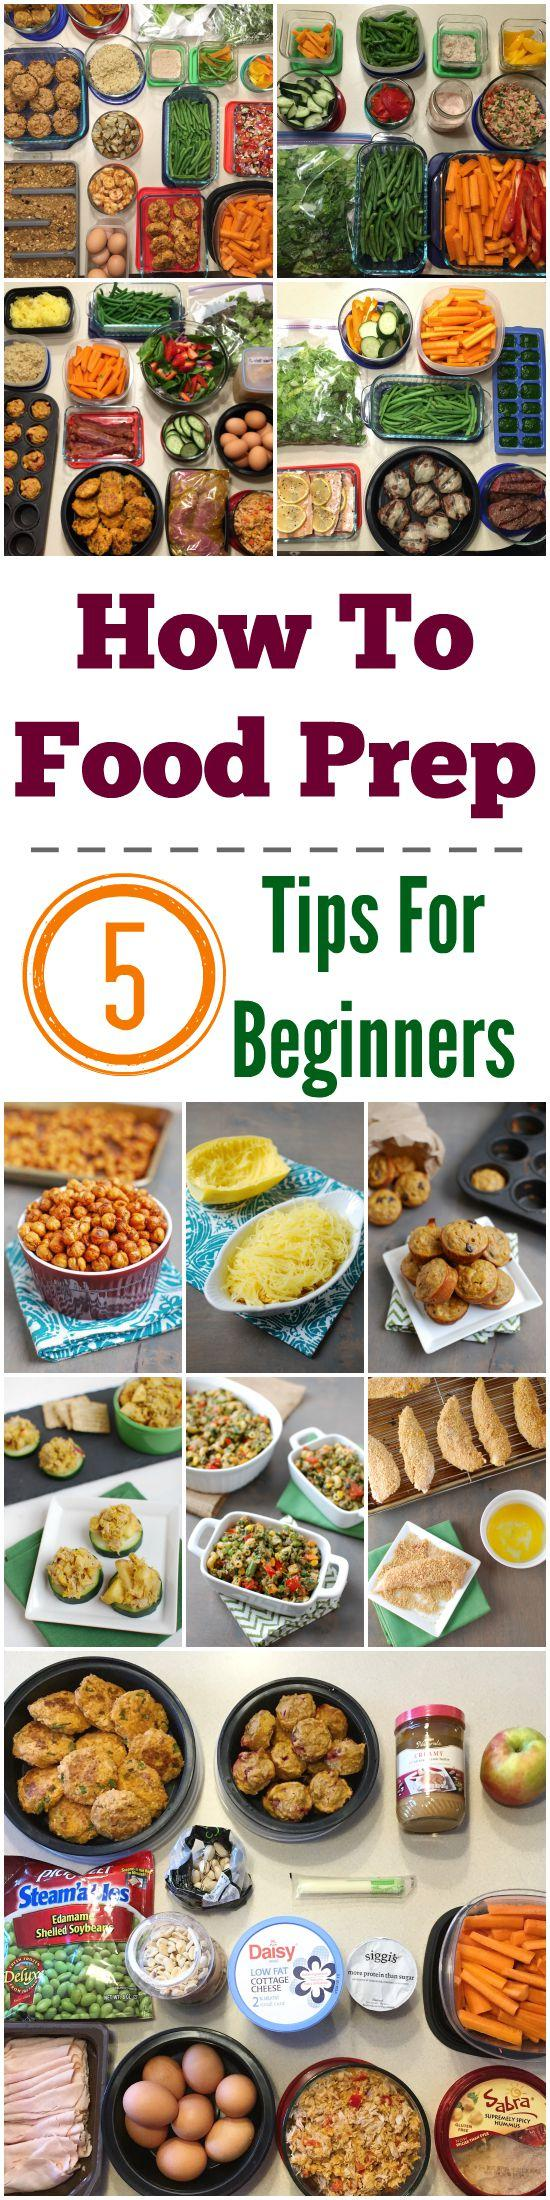 Ready to start prepping food but aren't sure where to start? Here are 5 tips for how to food prep for beginners!